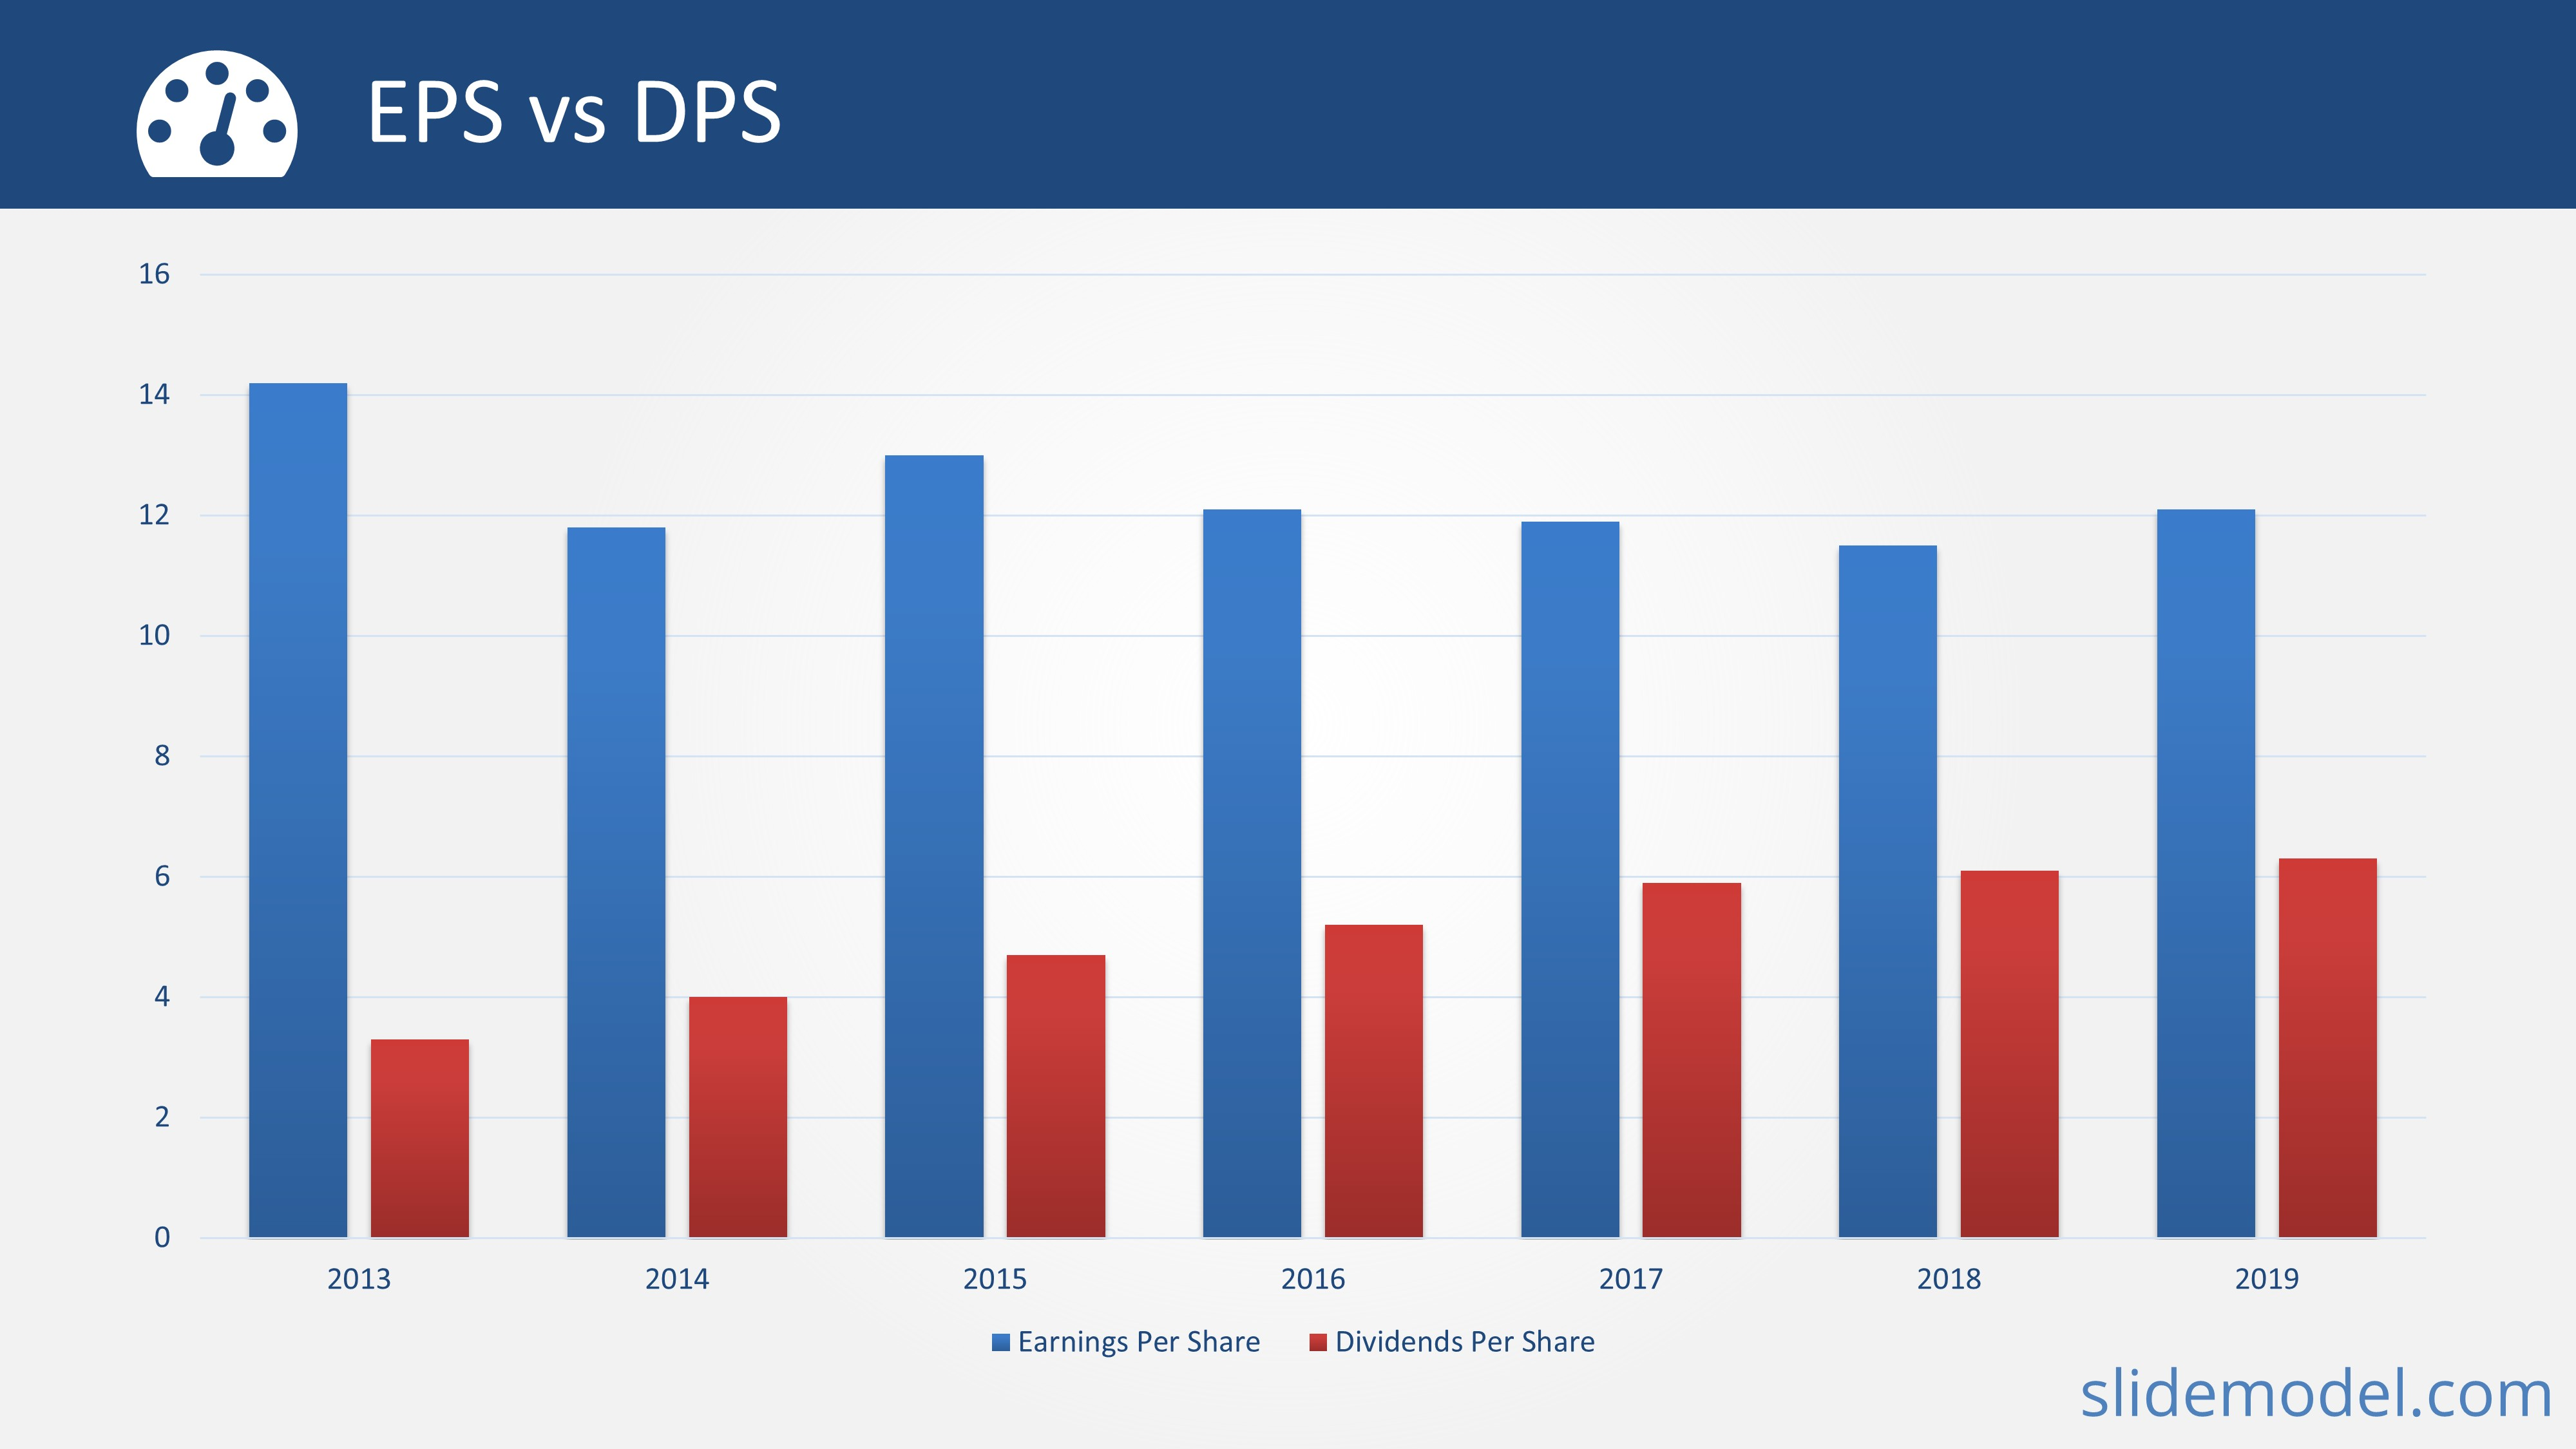 PPT Template EPS vs DPS